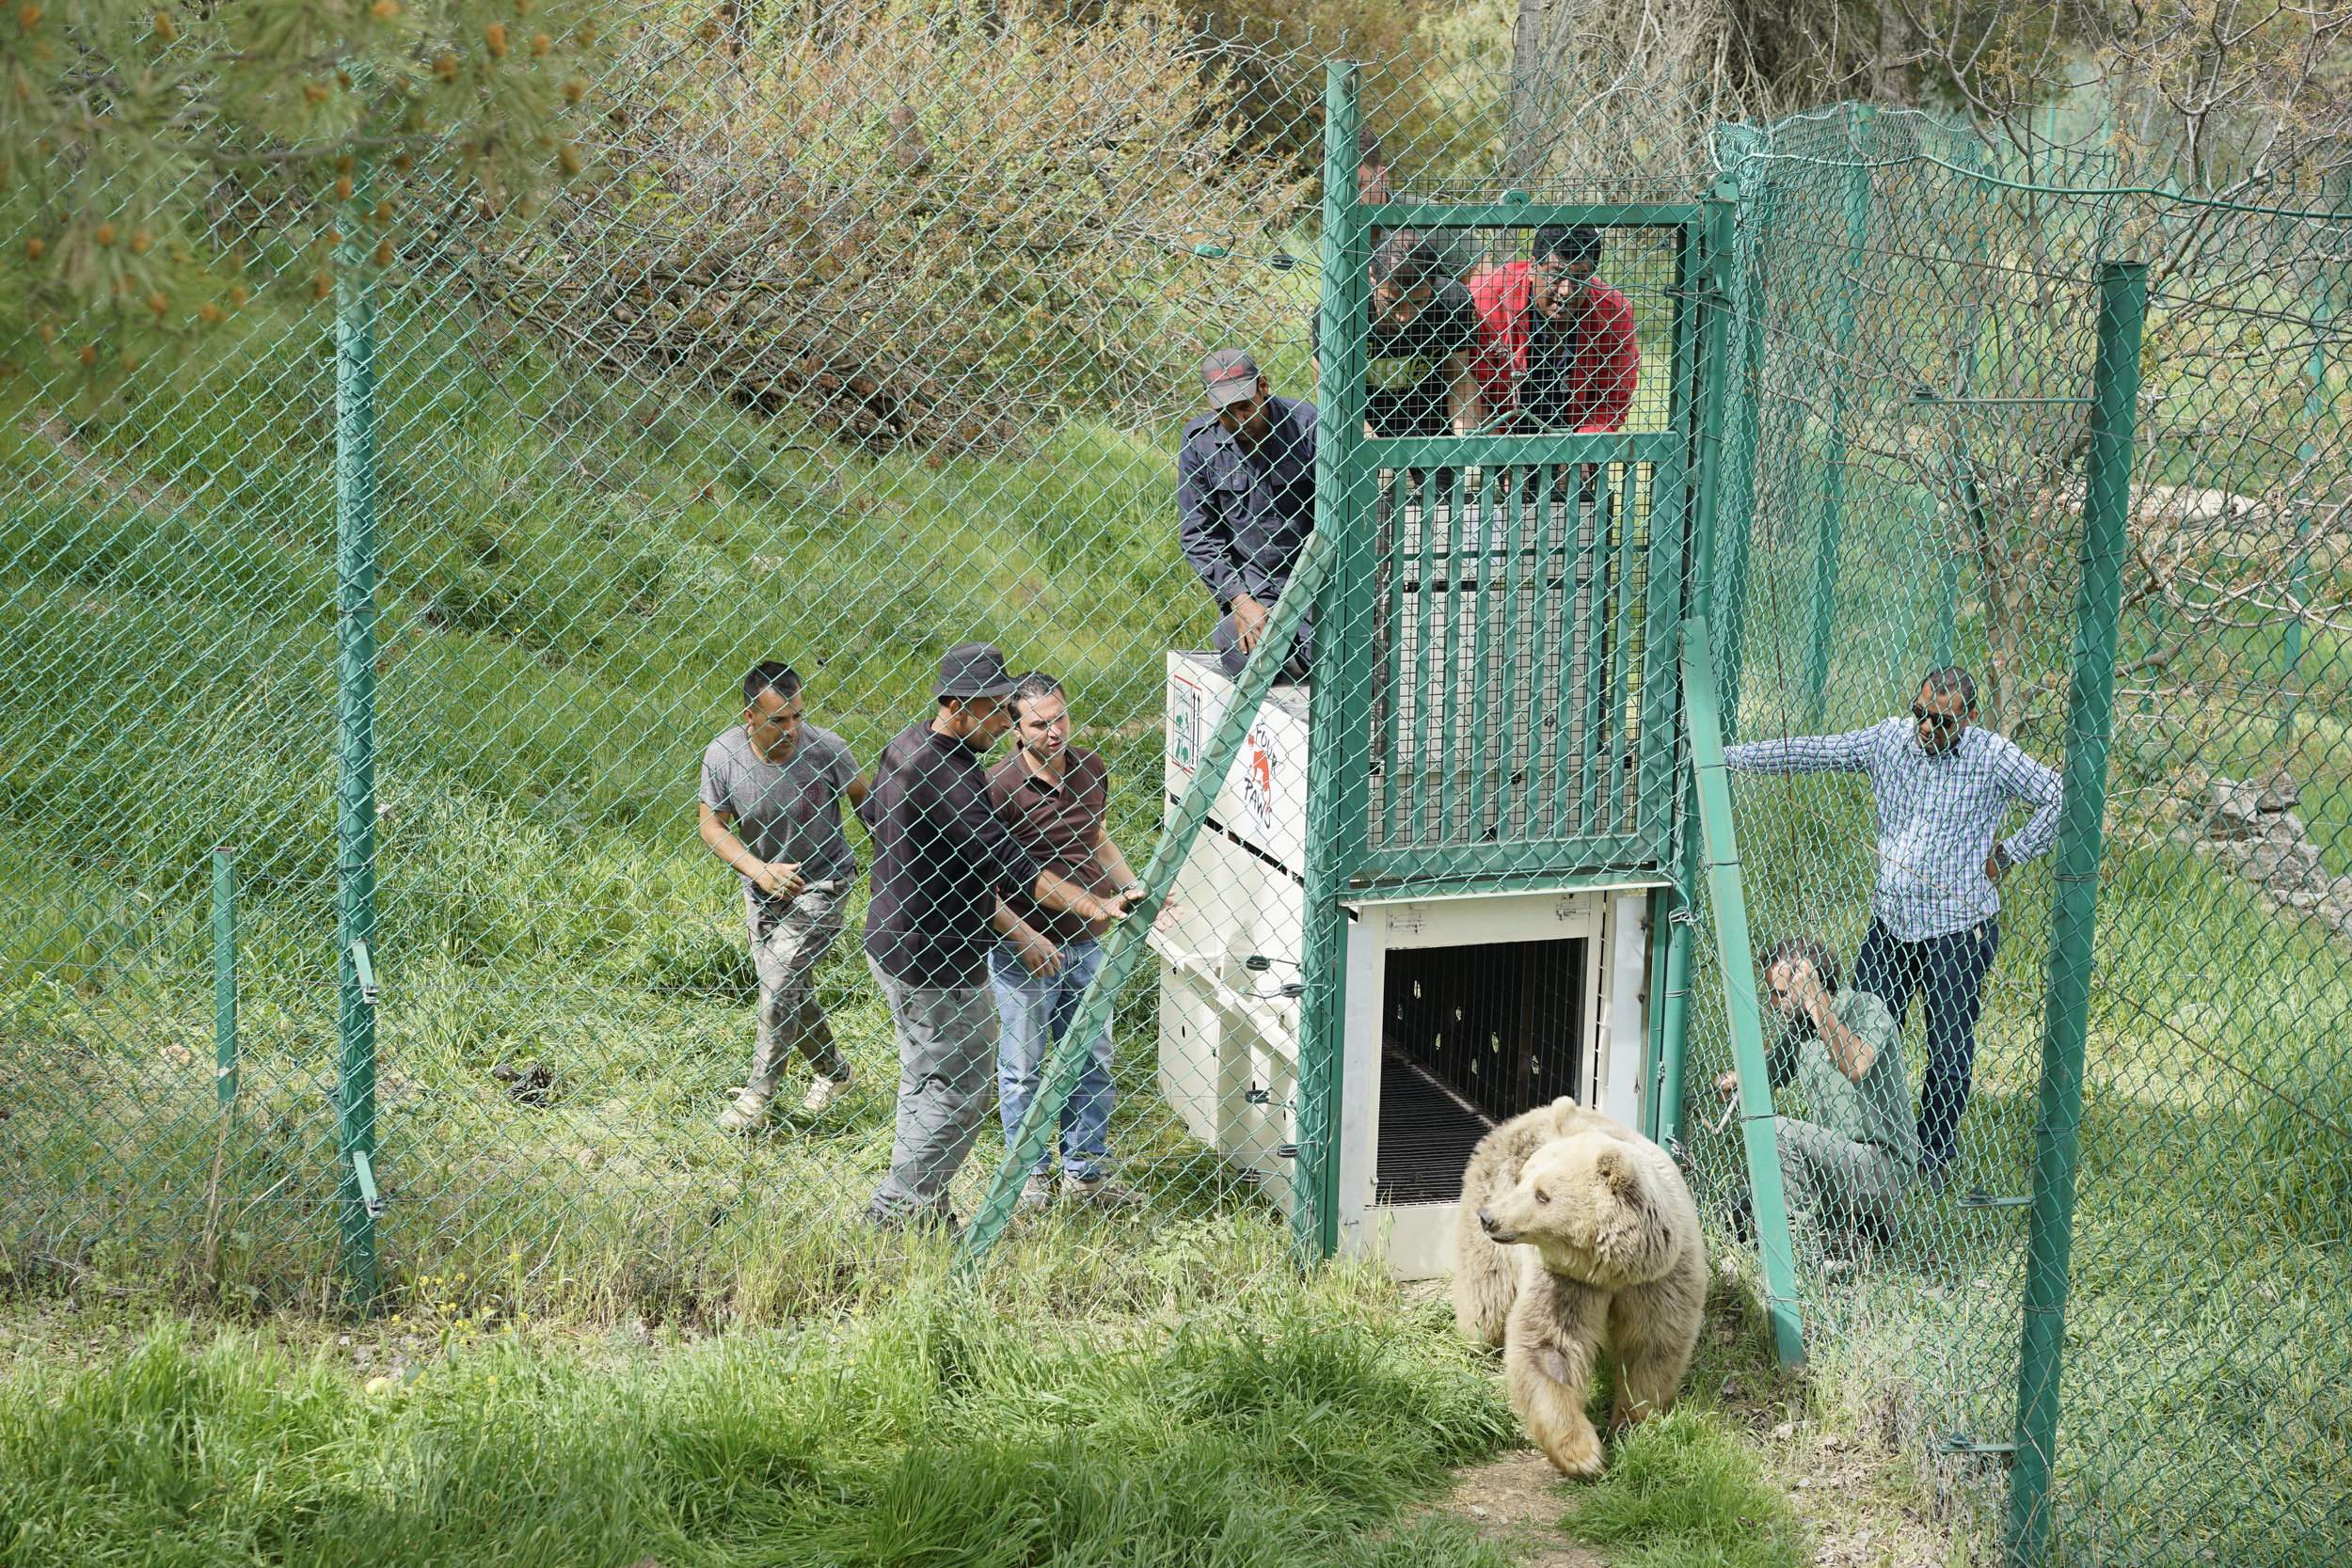 Lula being released into her new home in Jordan. Photo by Four Paws.